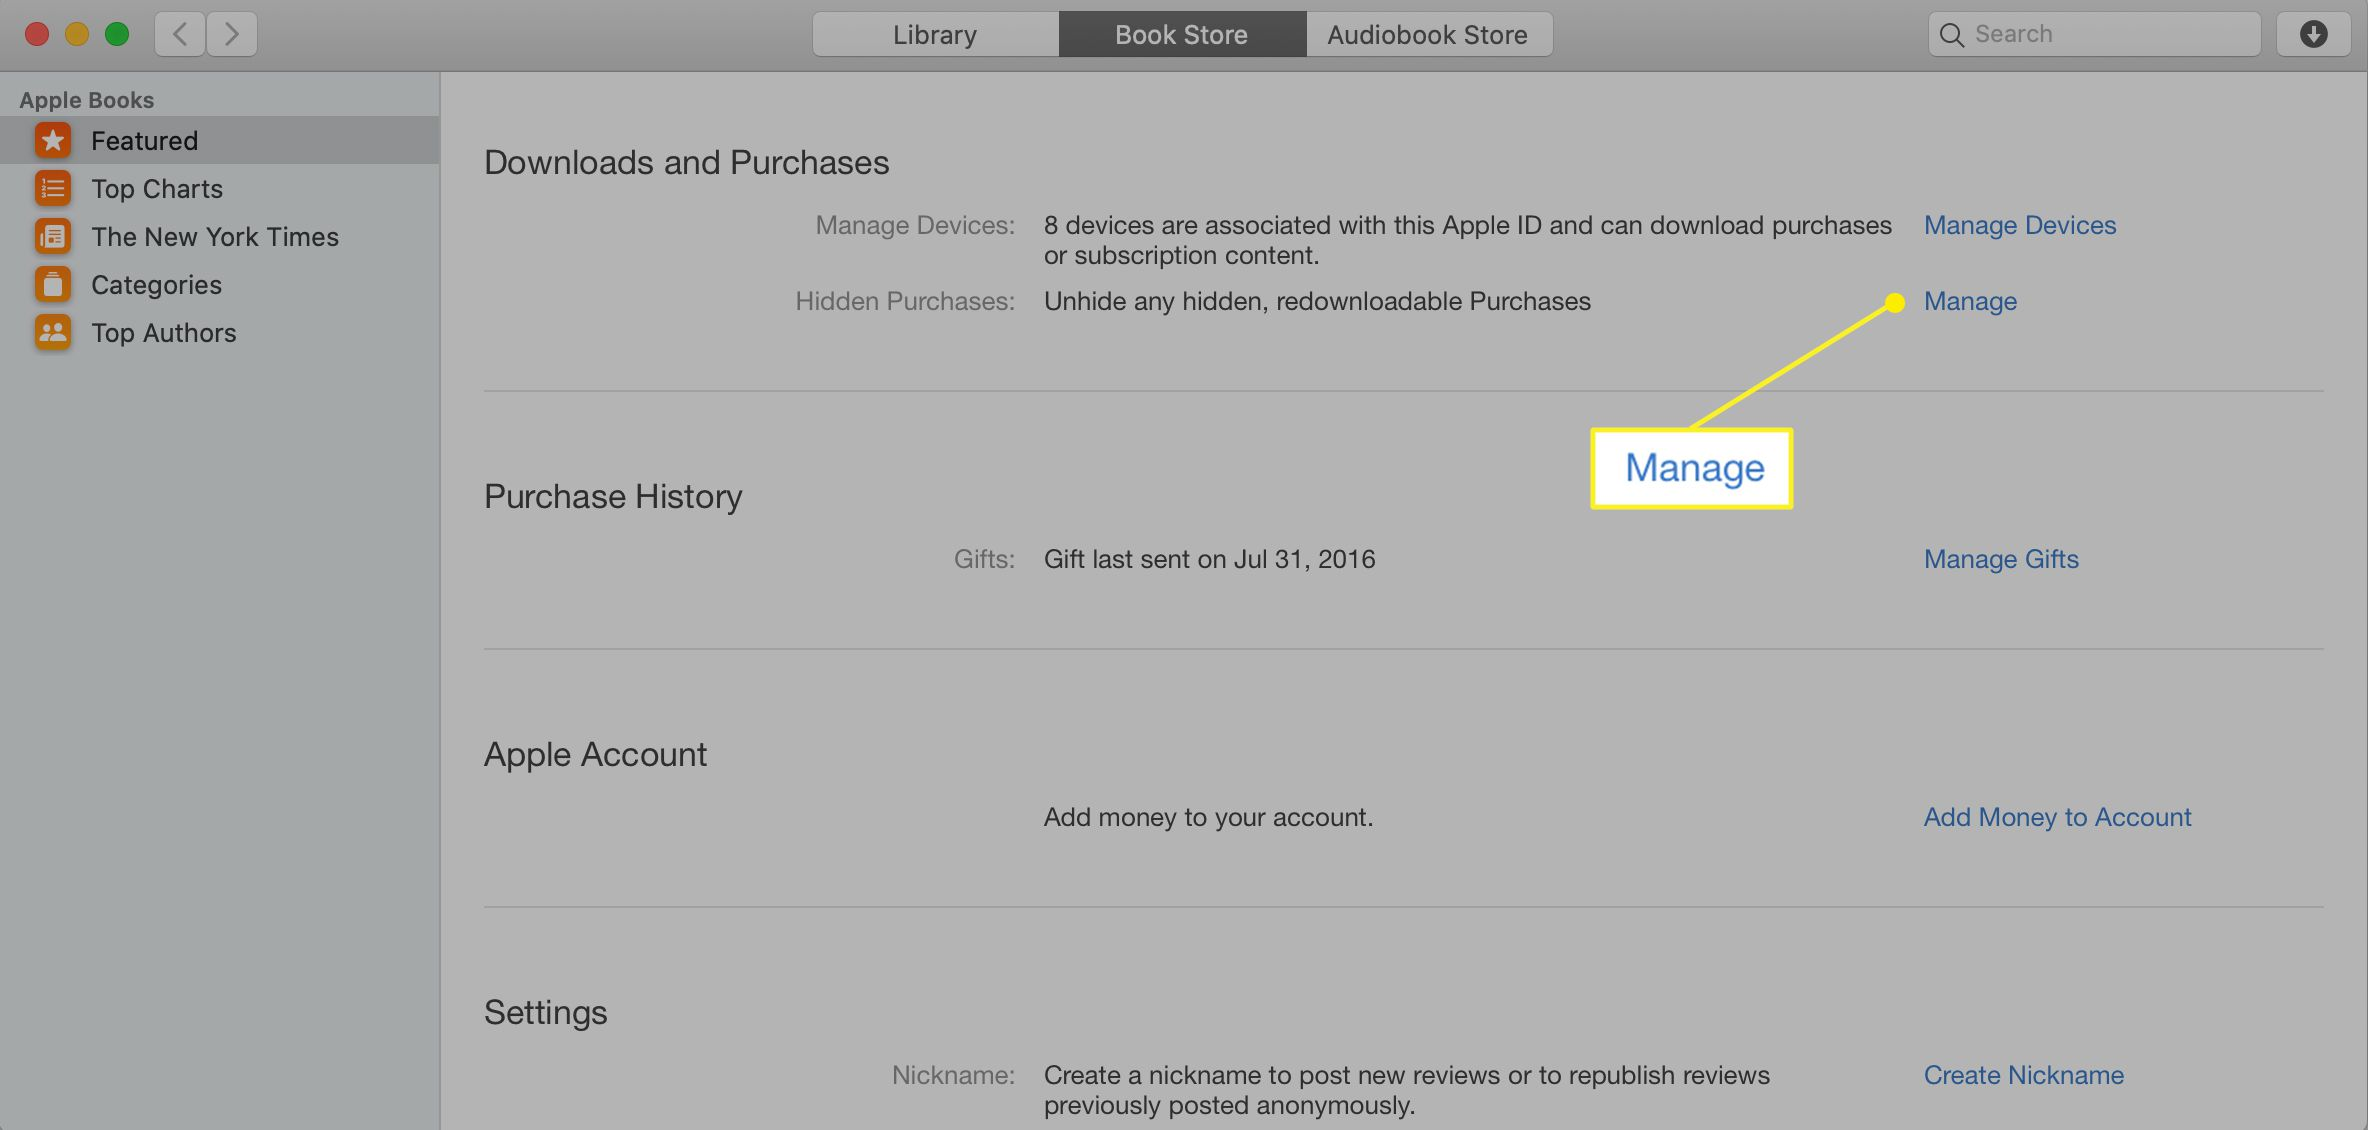 Apple account with Manage highlighted next to Hidden Purchases